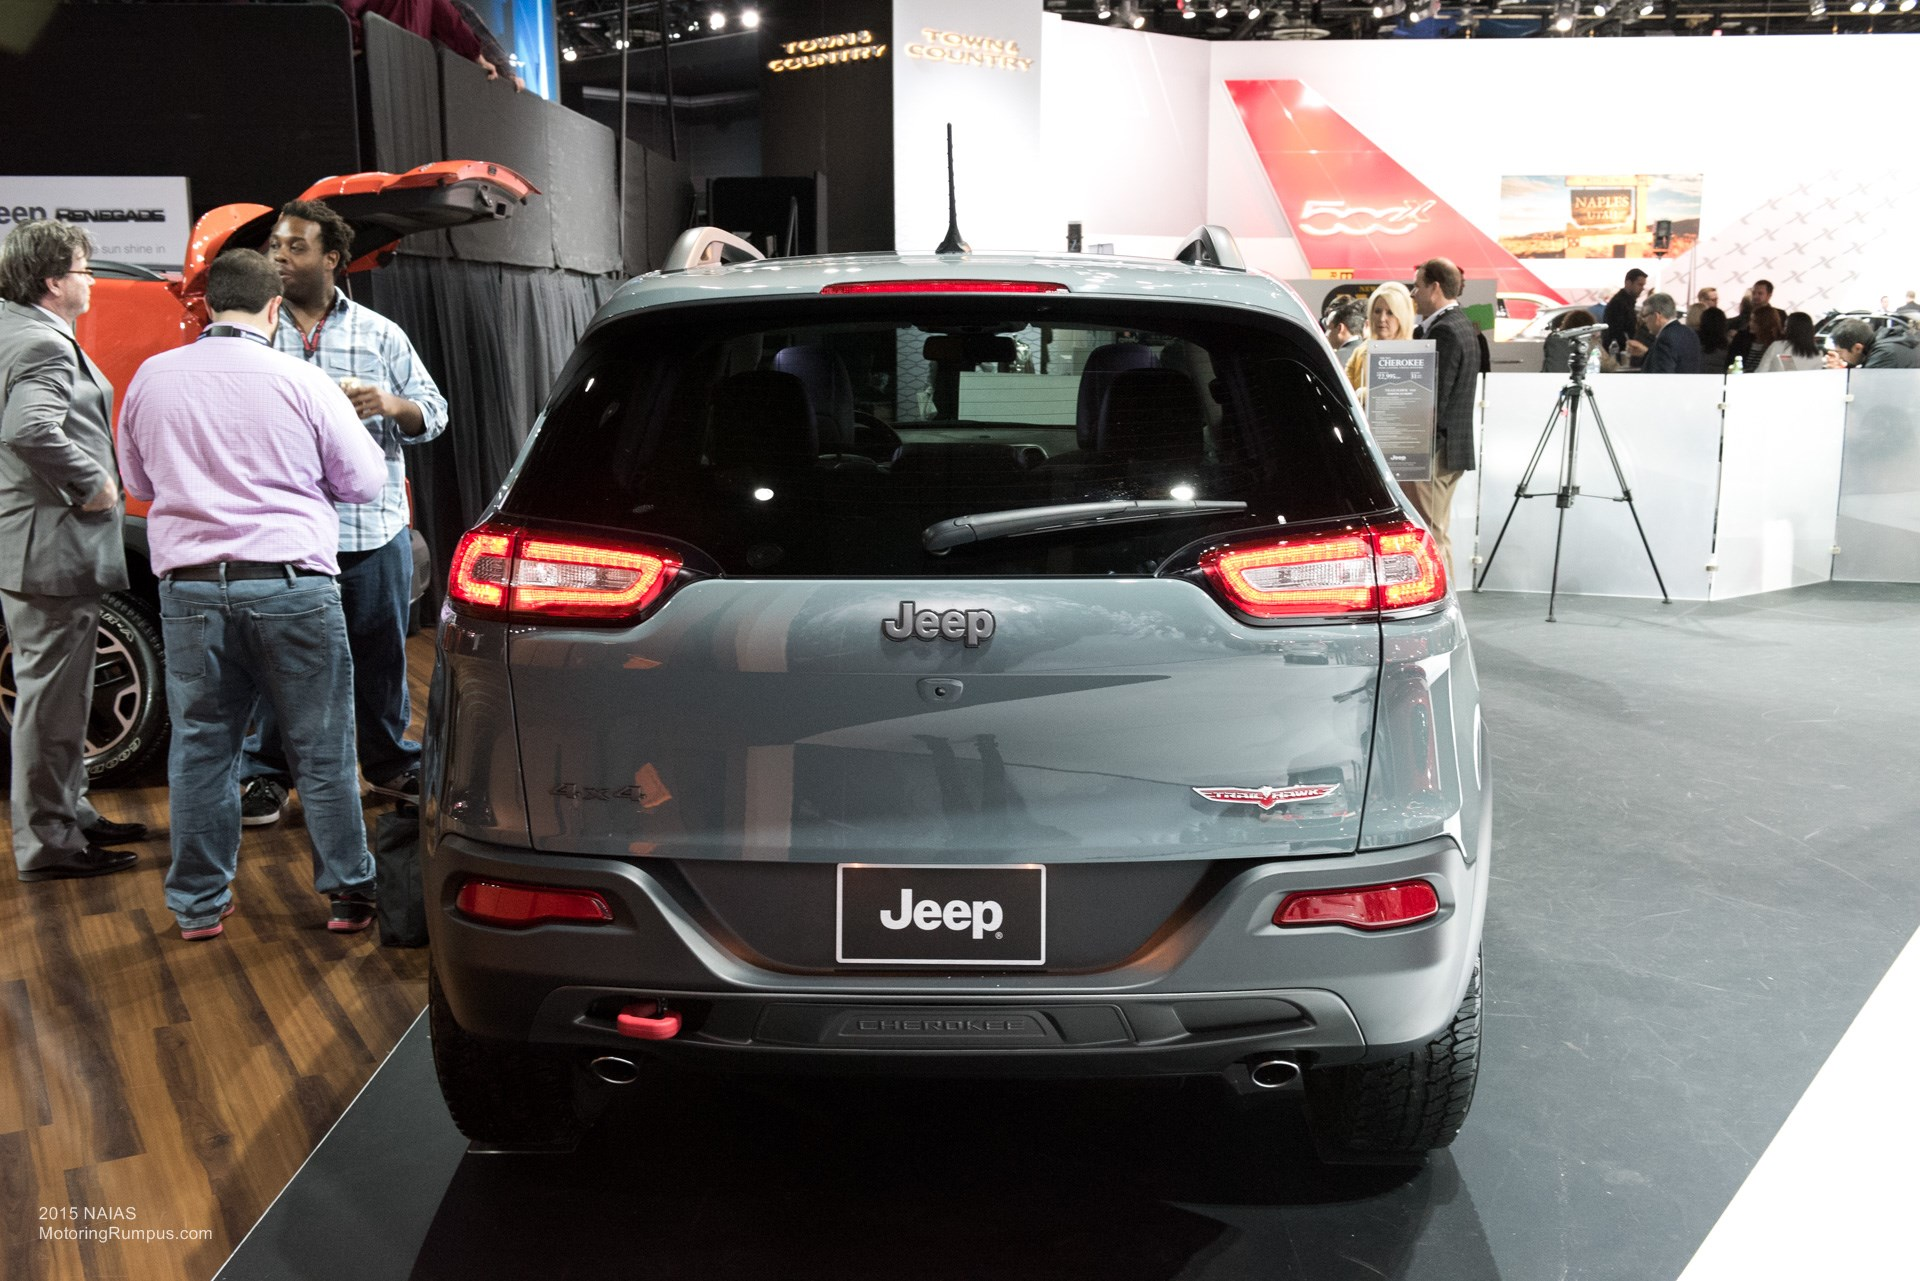 2015 NAIAS Jeep Cherokee Trailhawk Rear